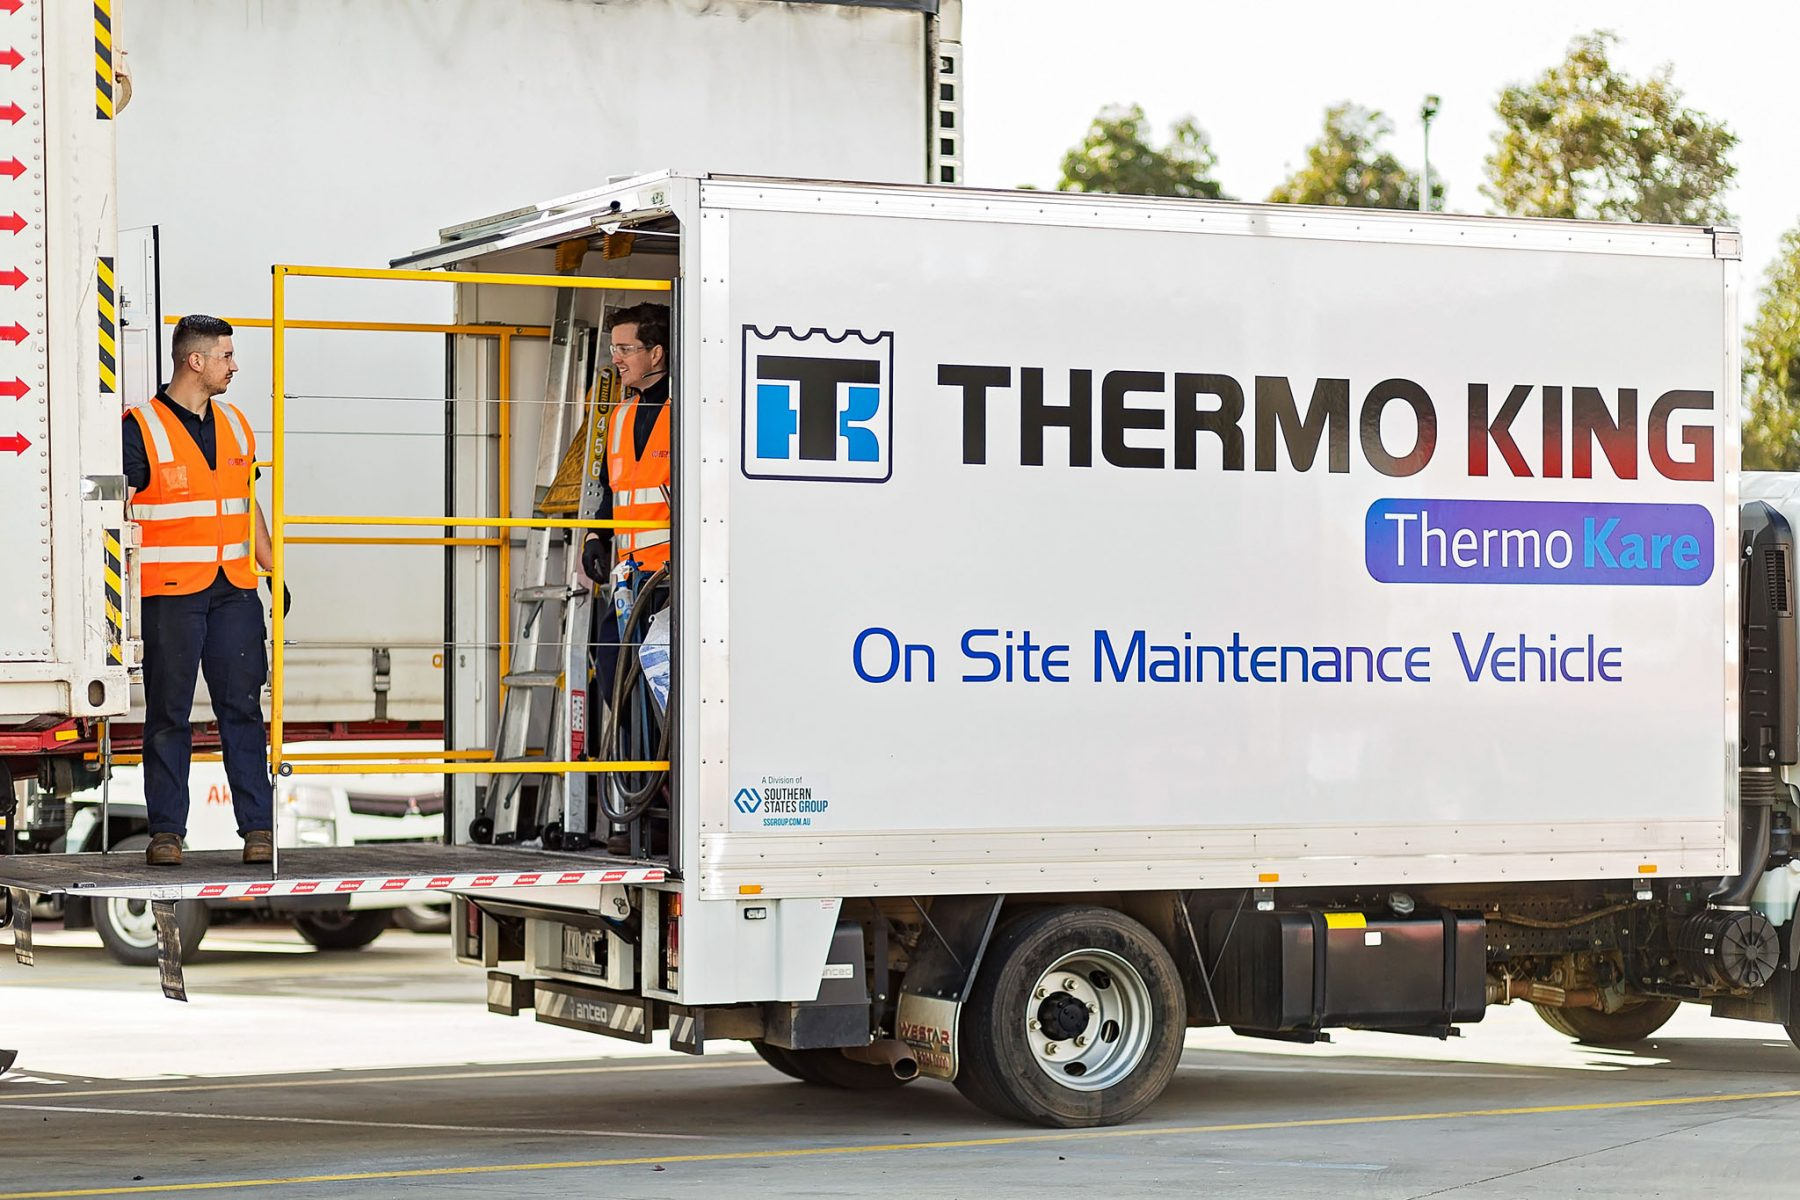 Thermo King maintenance vehicle